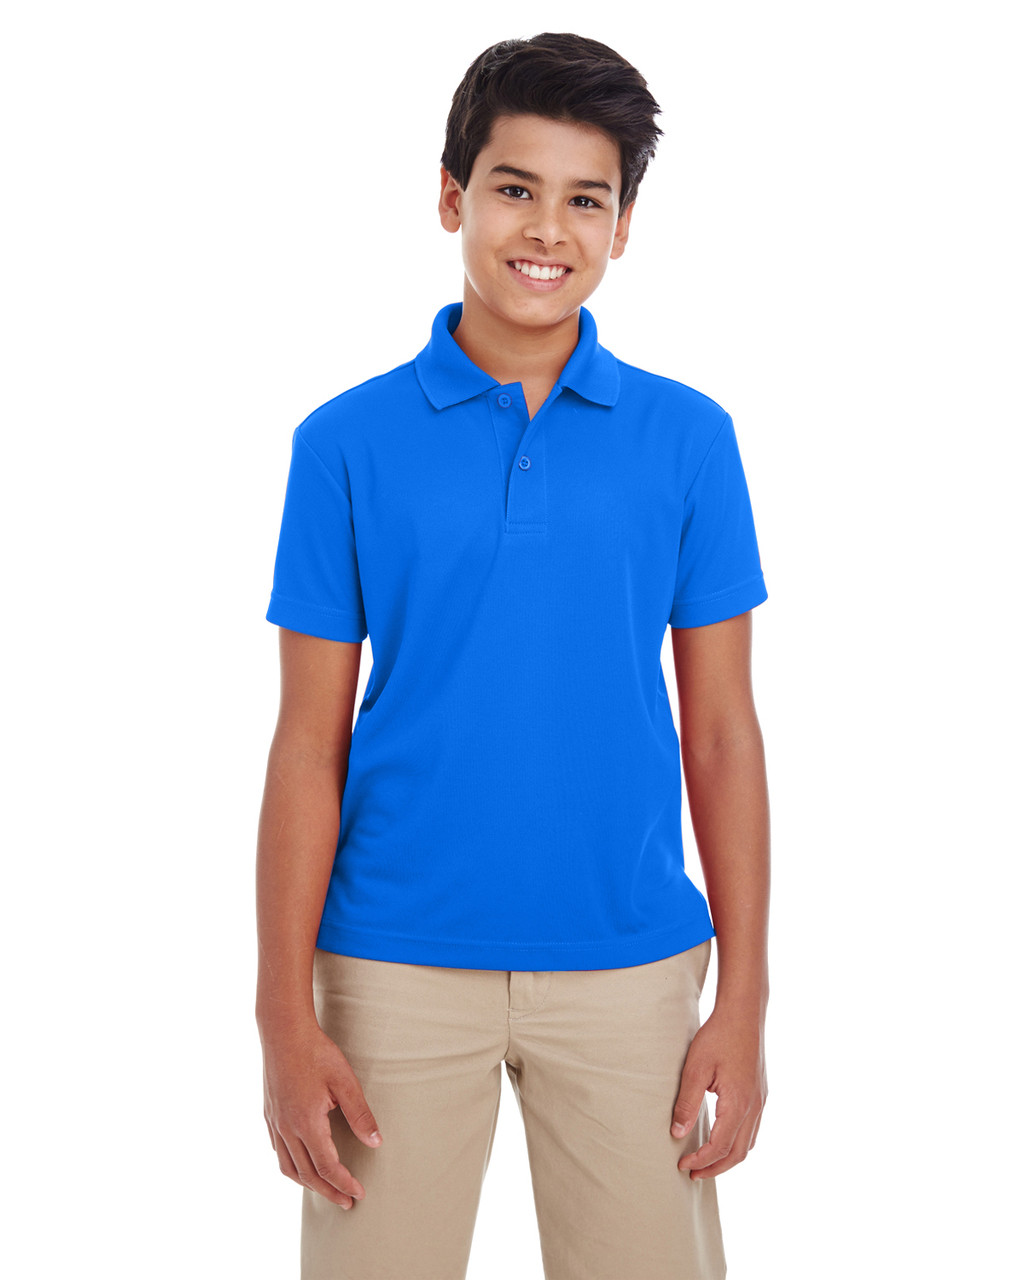 True Royal - 88181Y Ash City - Core 365 Youth Origin Performance Pique Polo Shirt | Blankclothing.ca